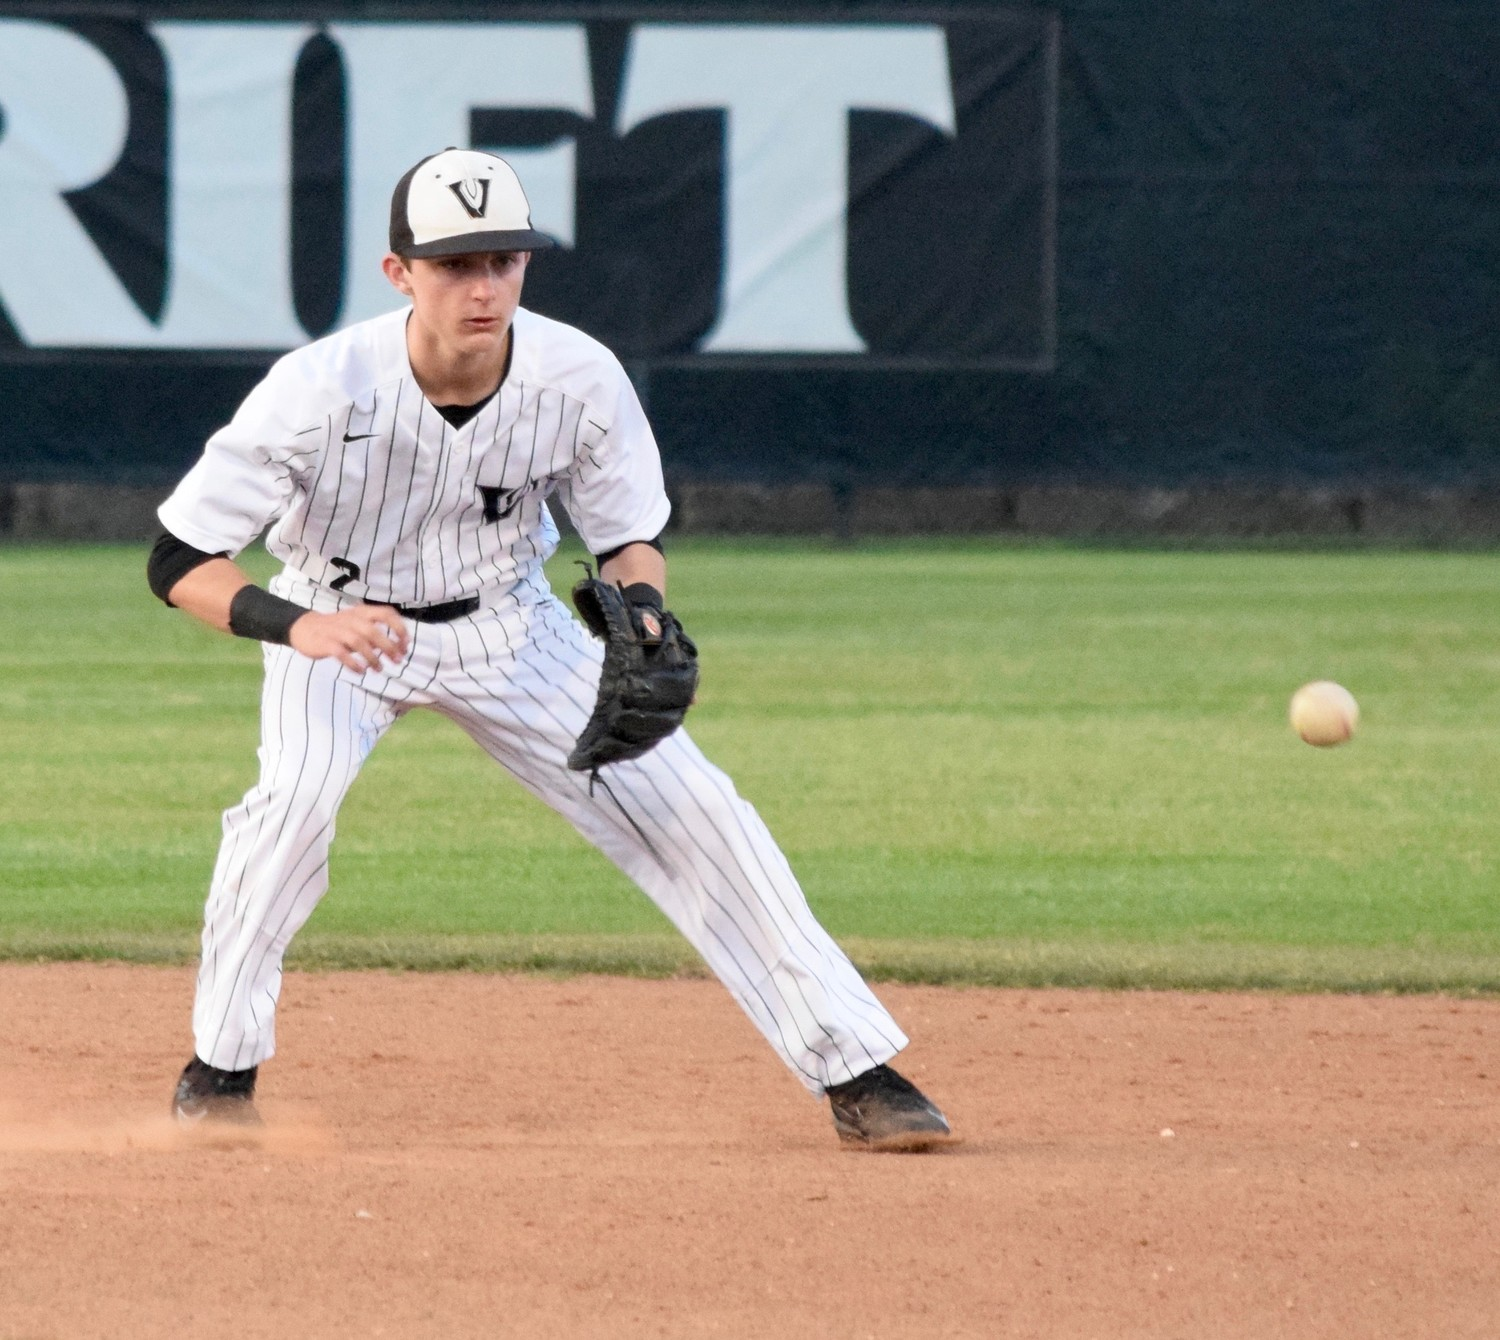 Luke Allen and Vandegrift lost 6-1 to San Antonio Reagan in the first game of the playoffs Wednesday night.